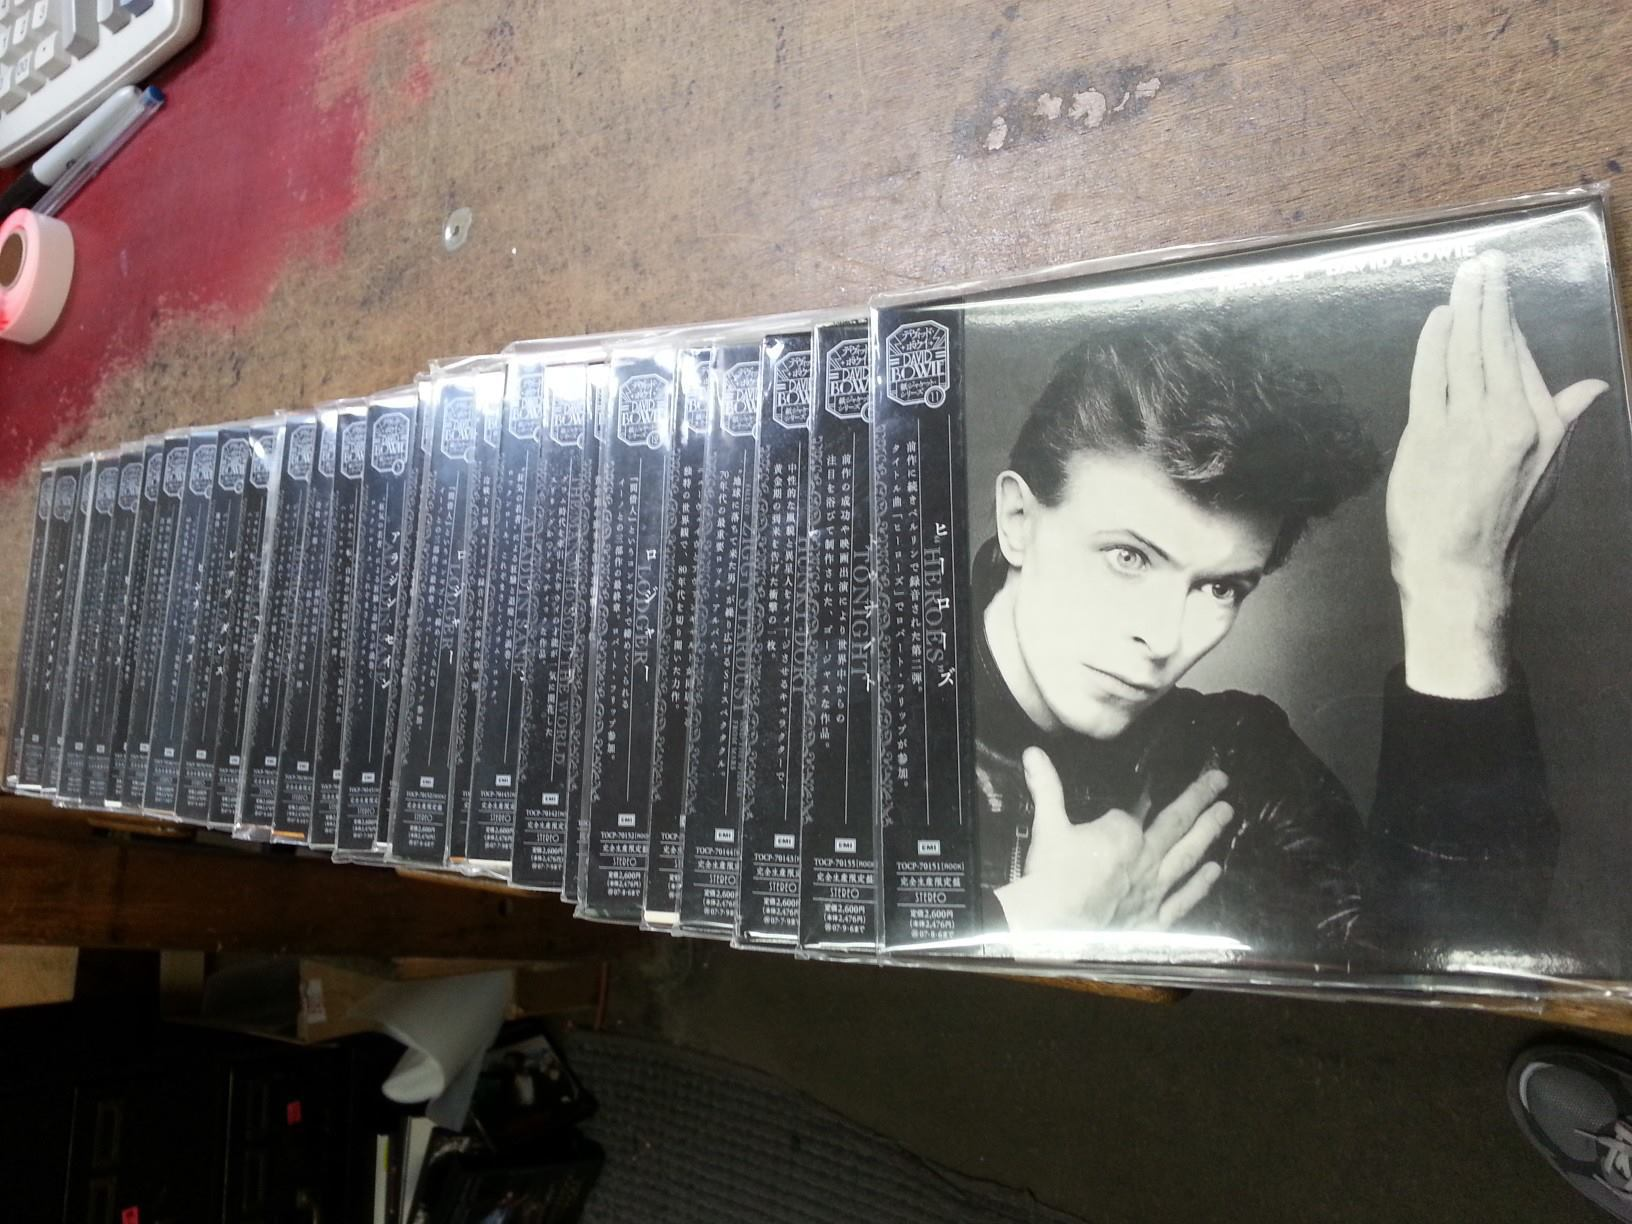 Japanese Bowie CDs